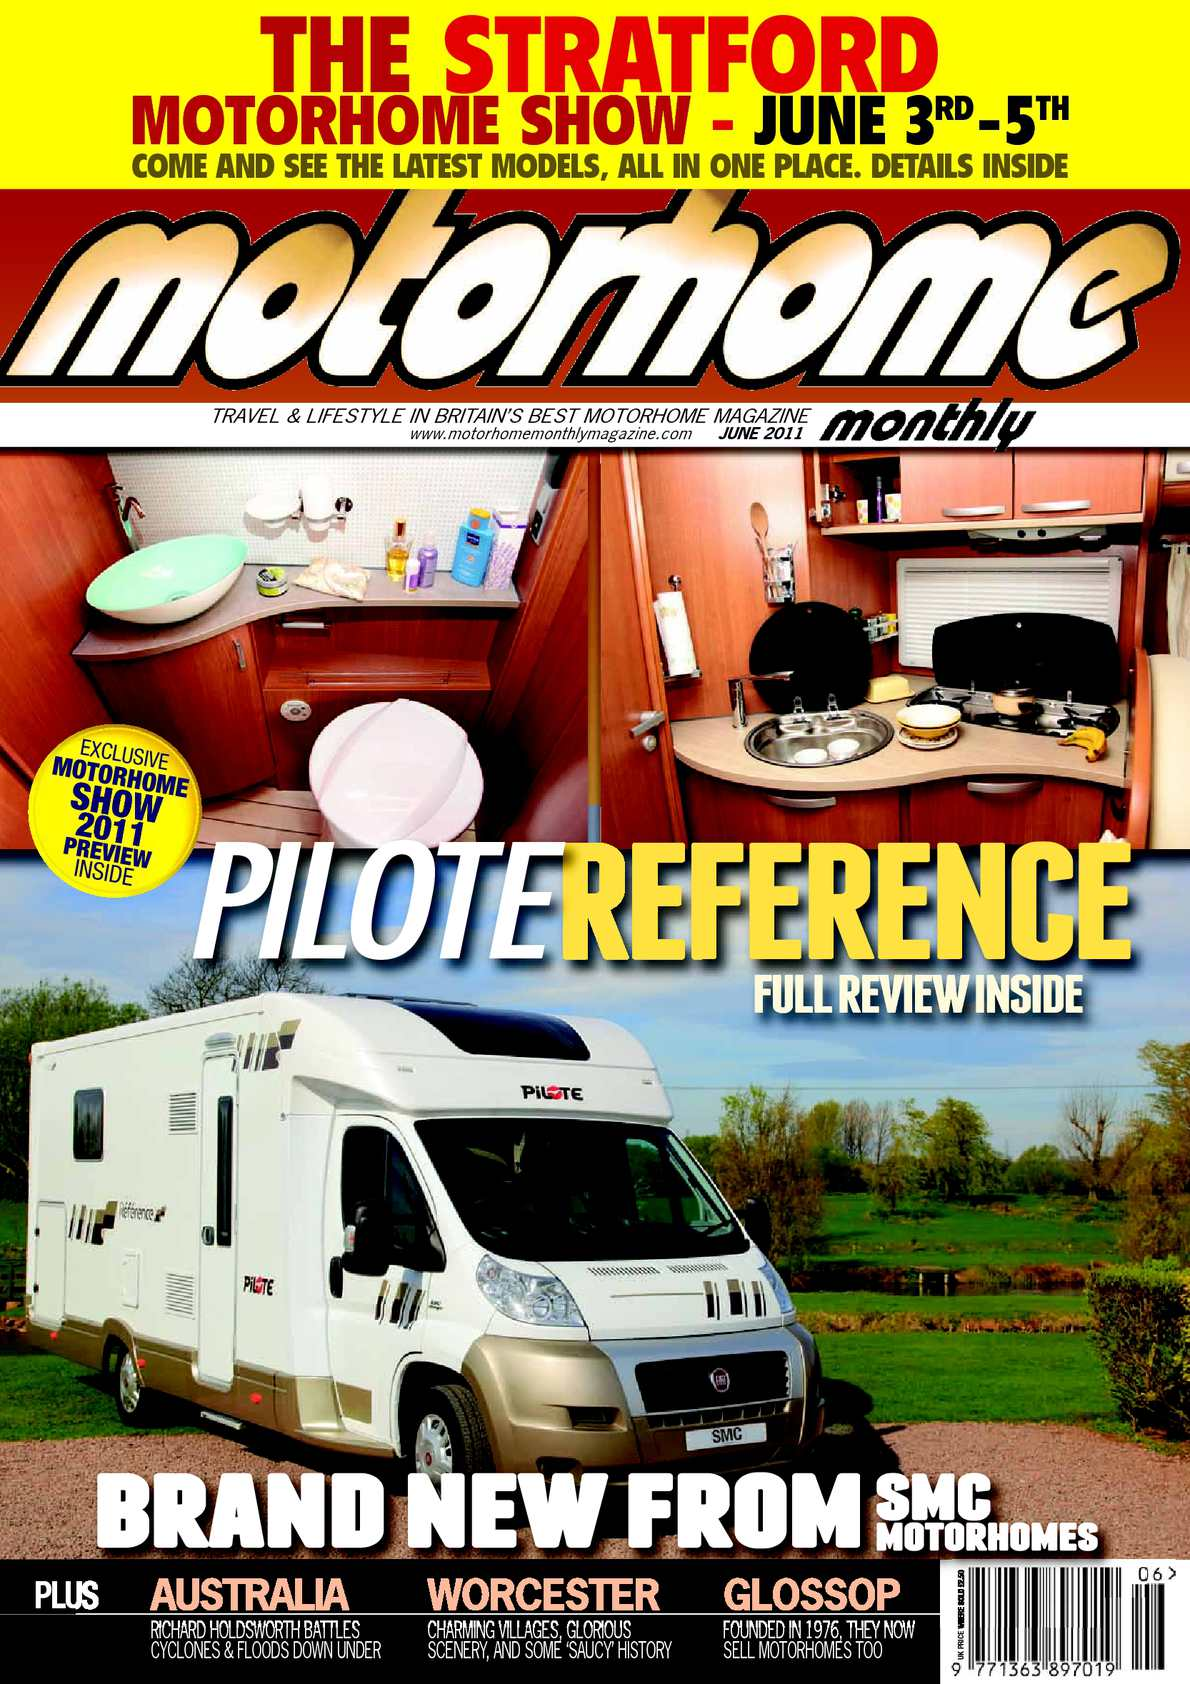 Abt-888 Lovely Calaméo June 2011 Motorhome Monthly